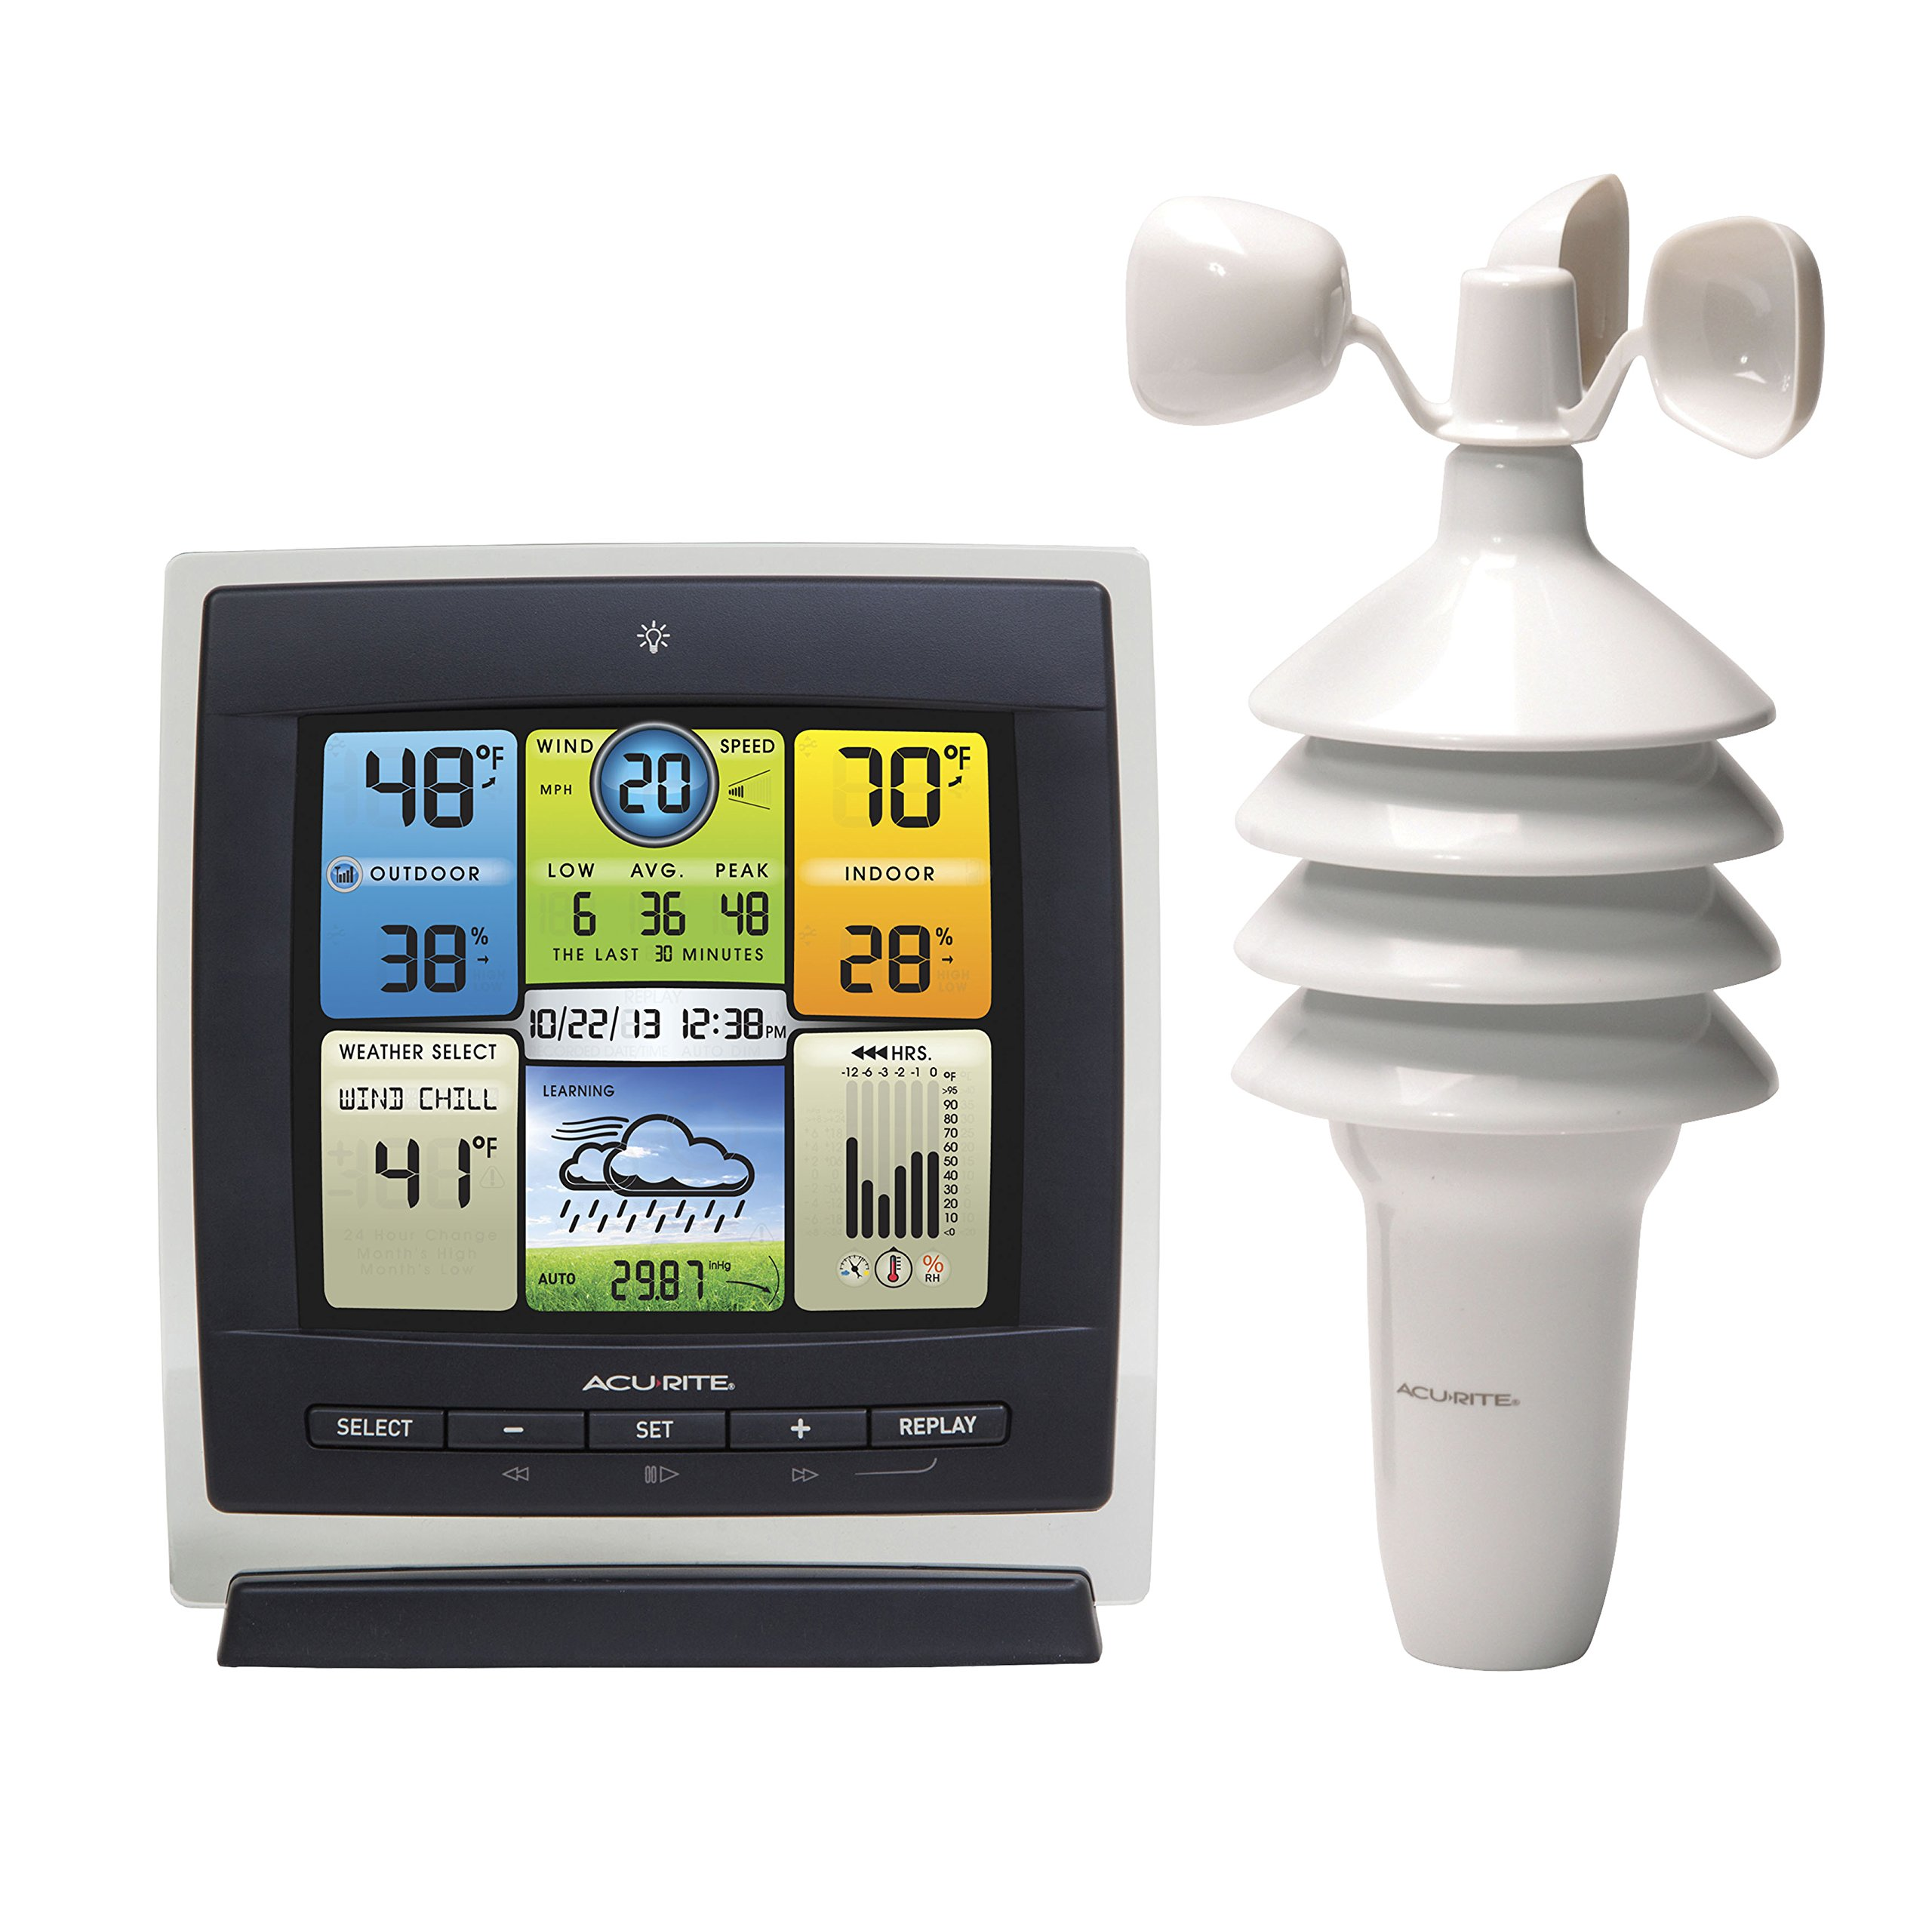 AcuRite 00589 Pro Color Weather Station with Wind Speed, Temperature and Humidity by AcuRite